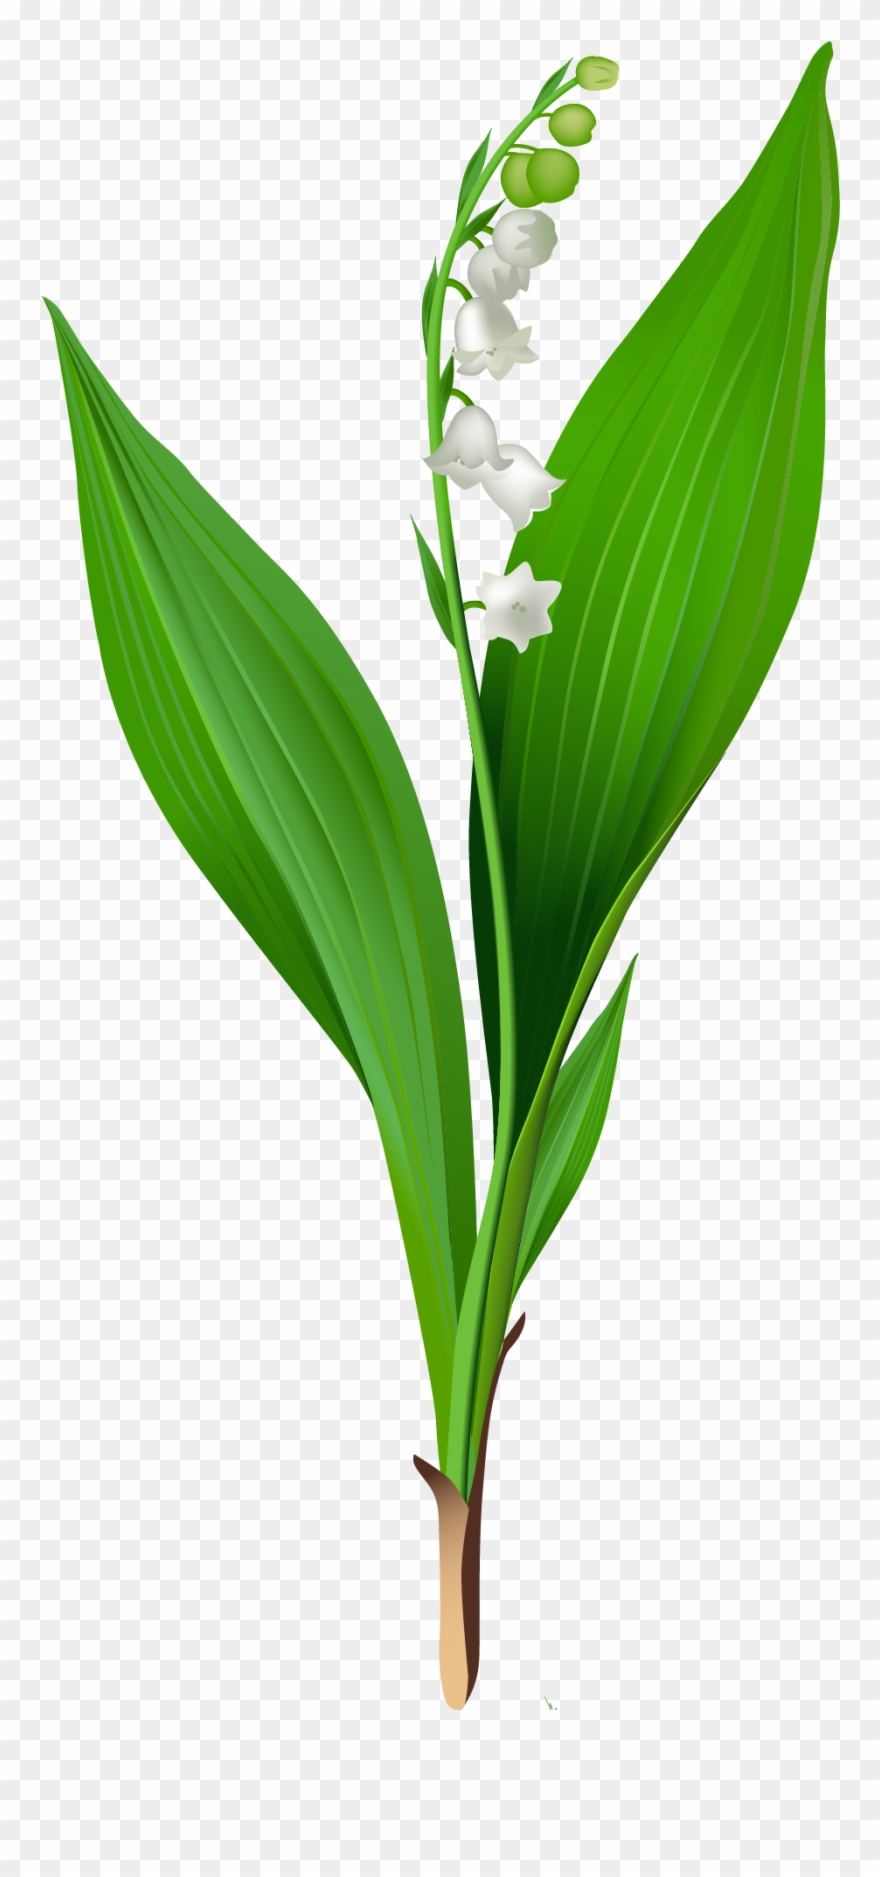 Lilies of the valley clipart clip freeuse download Flowers For > Lily Of The Valley Clip Art - Lily Of The Valley ... clip freeuse download